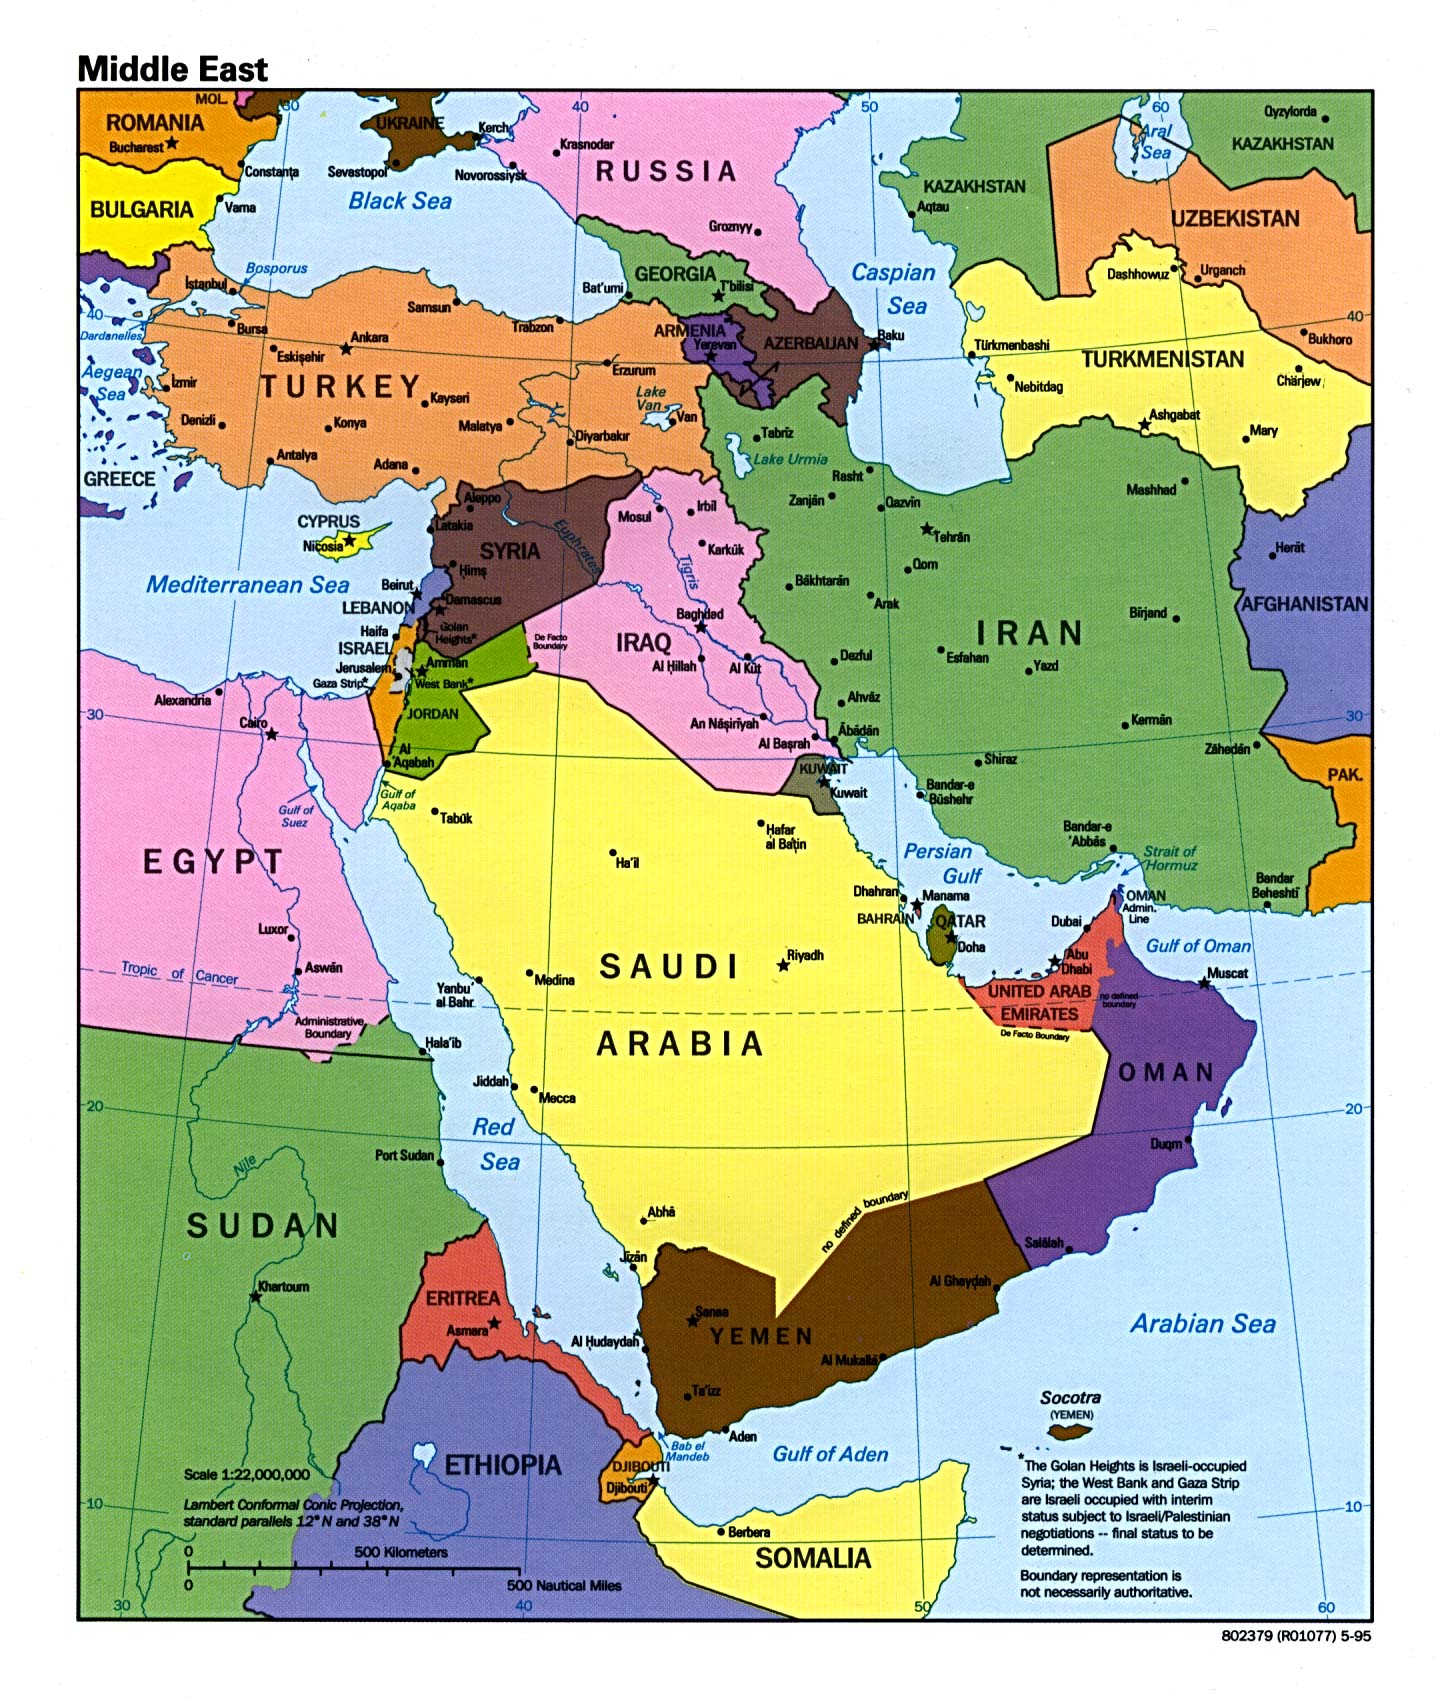 Map Of Middle East Countries Involved In The War Of Gog